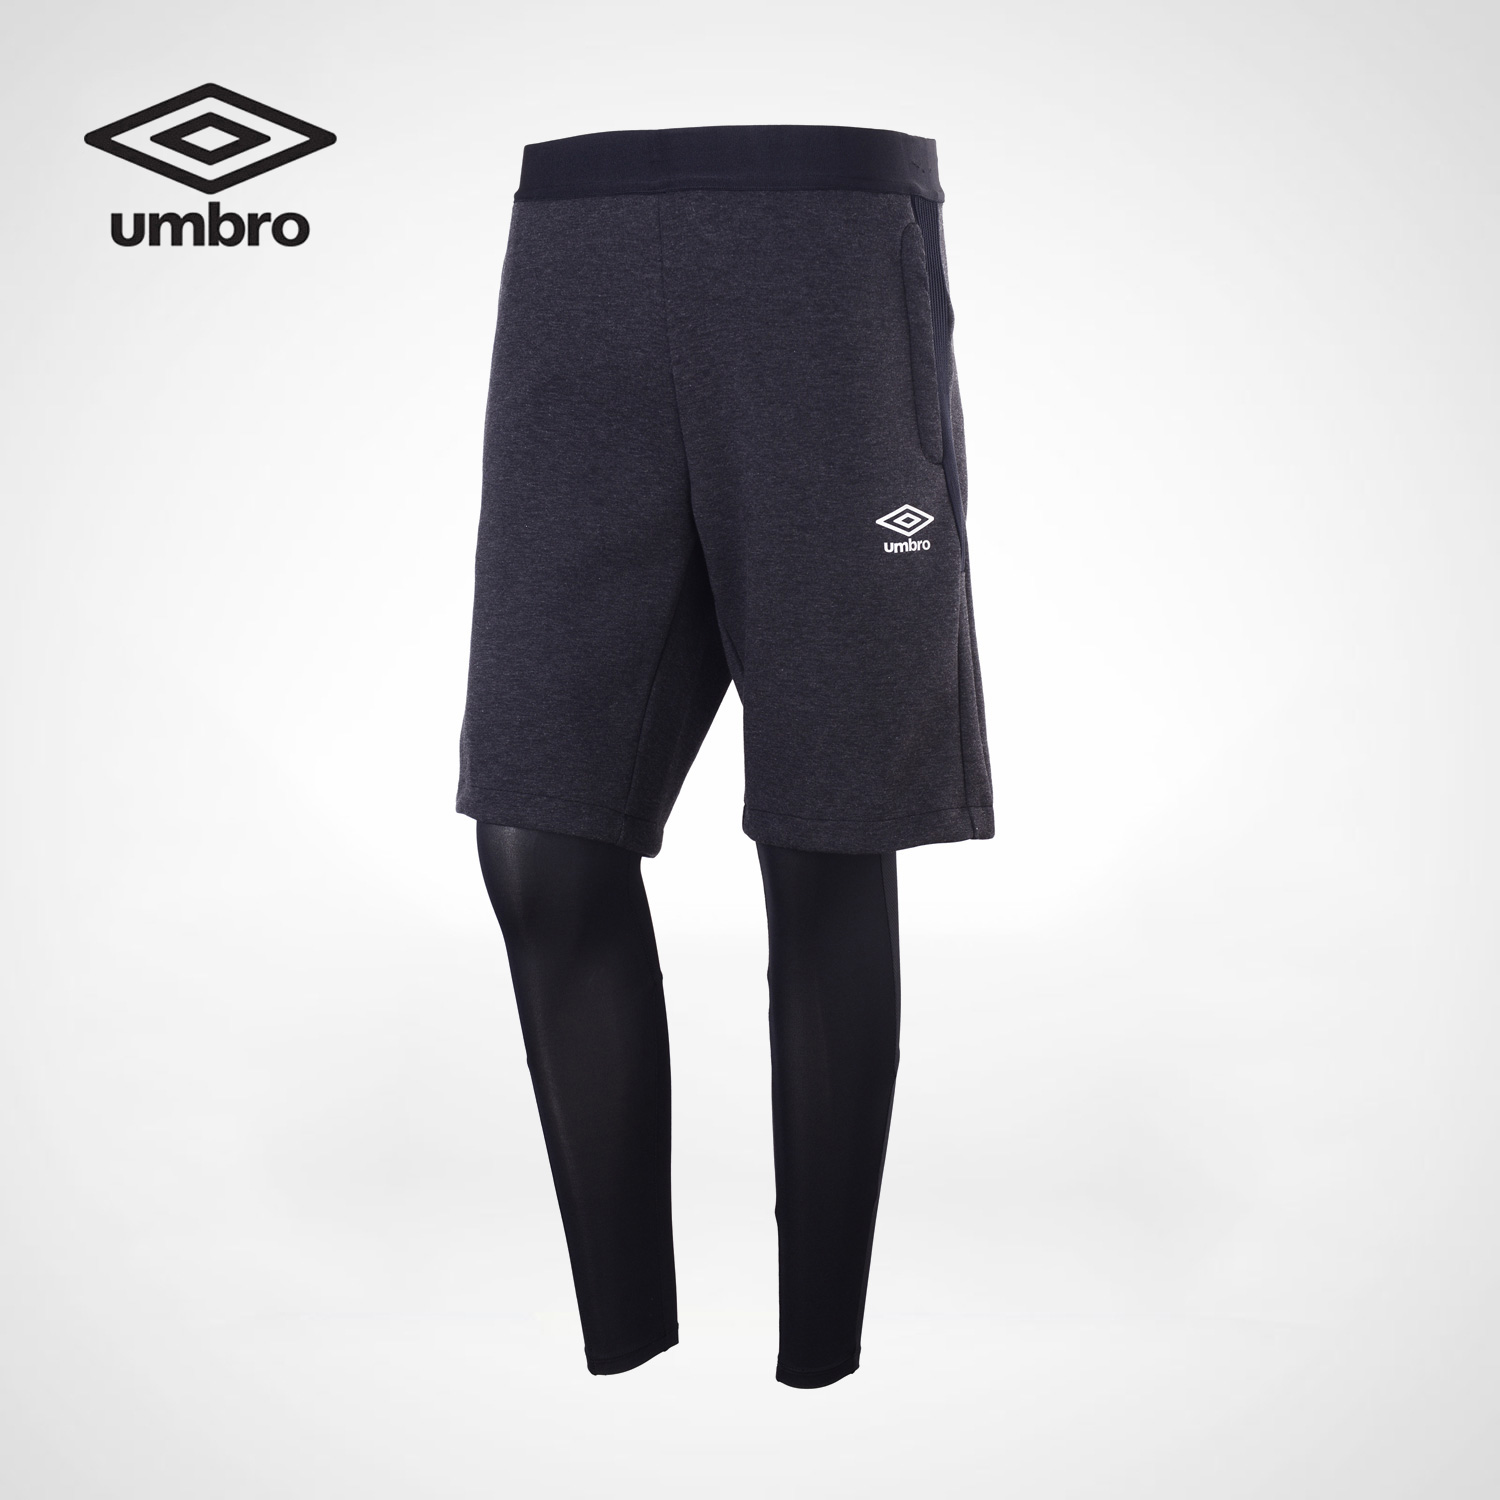 Umbro New Men Comfortable Training Sports Pants Leisure Relaxation Comprehensive Training Sportswear Long Trousers UCC63731 new 2018 men outdoor running sports pants striped full length leisure sport trousers comfortable breathable sweatpants